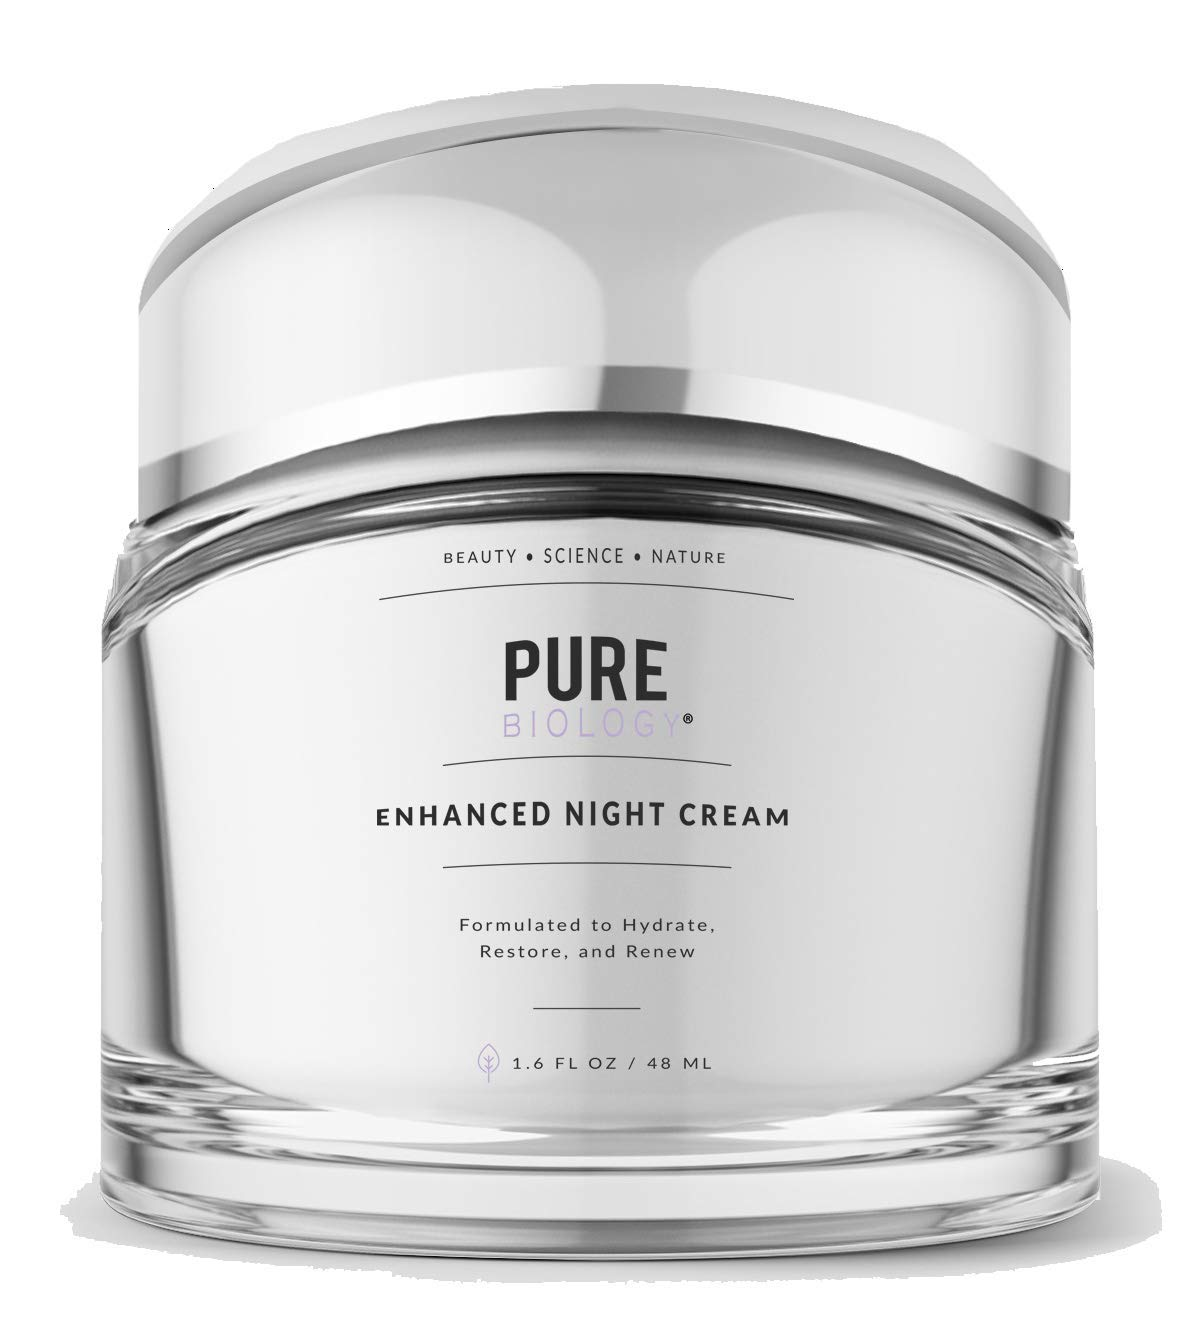 Pure Biology Premium Night Cream Face Moisturizer with Retinol, Hyaluronic Acid & Anti Aging, Wrinkle Firming Complexes - Collagen Boosting Skin Care for Men & Women, 1.6 oz by Pure Biology